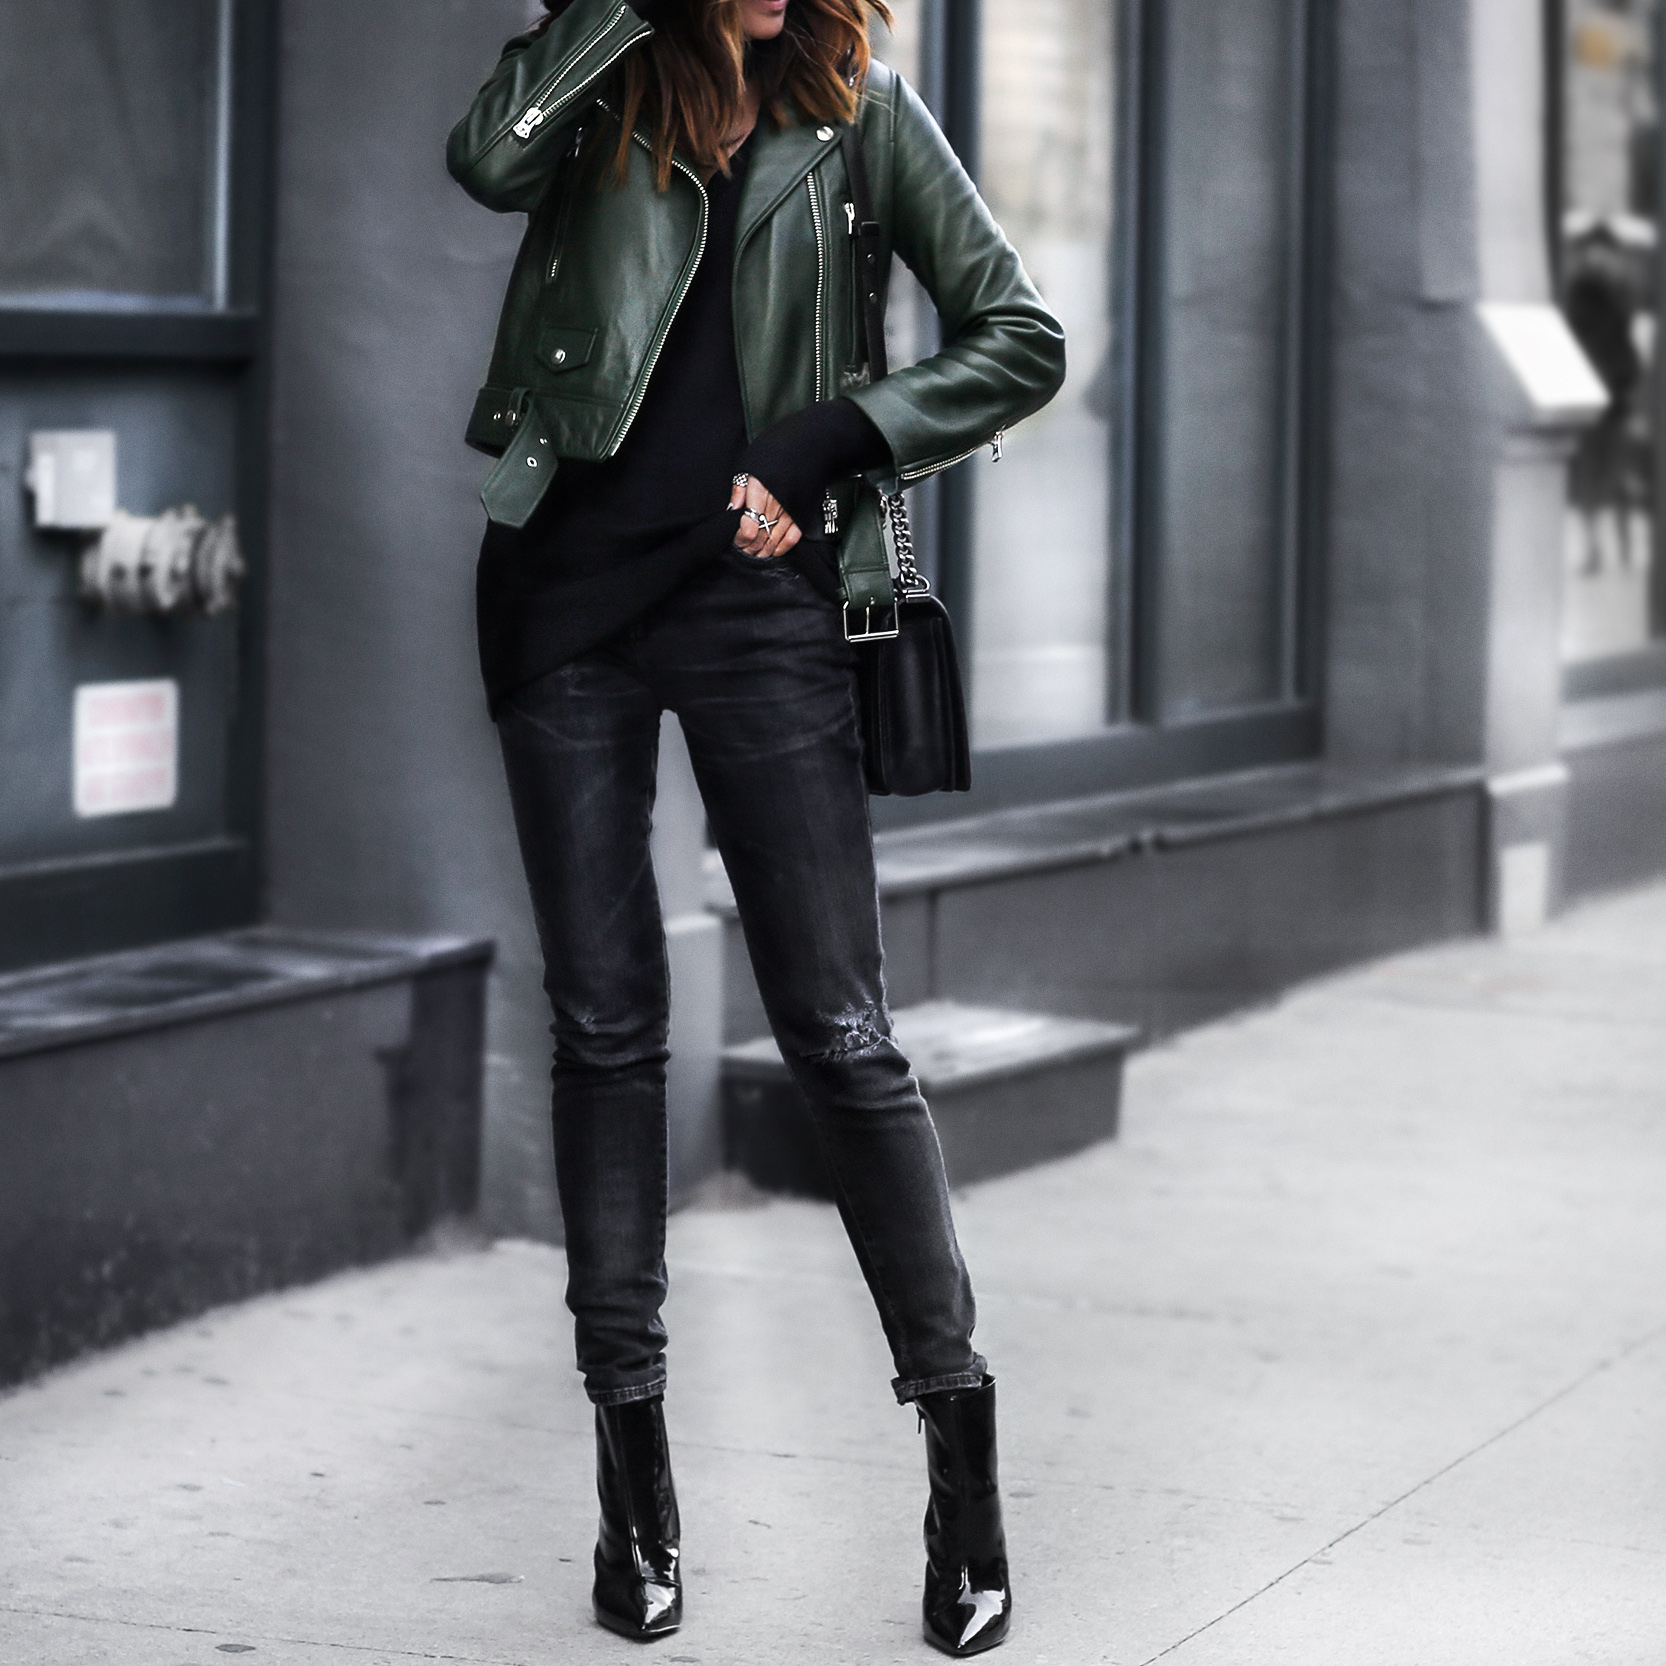 green leather jacket, black skinny jeans, black patent leather booties